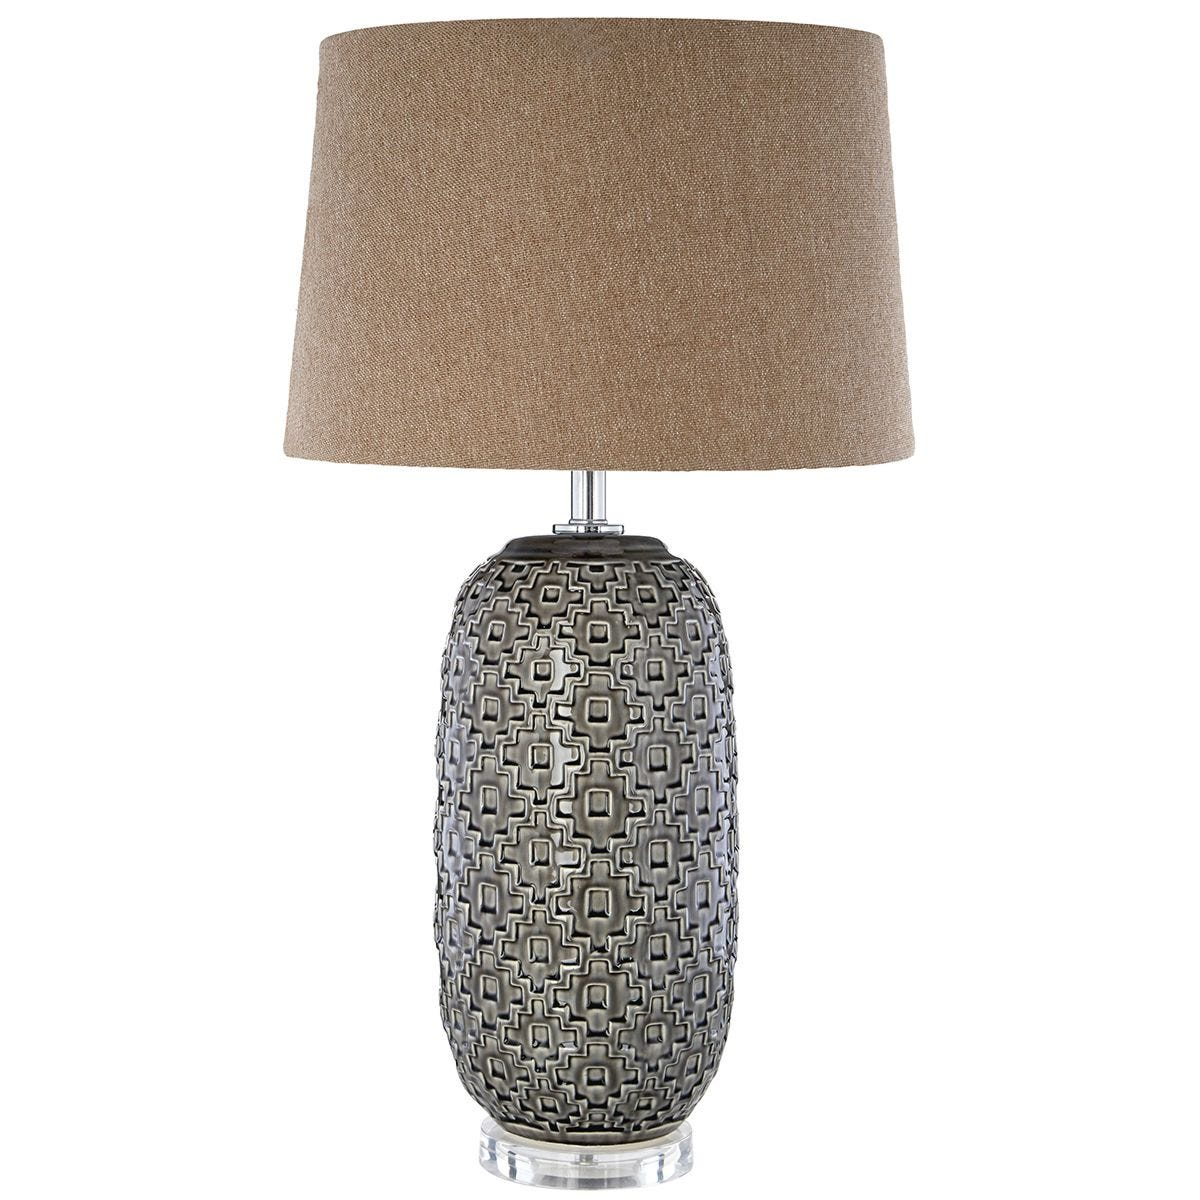 Premier Housewares Udele Table Lamp with Brown/Grey Shade